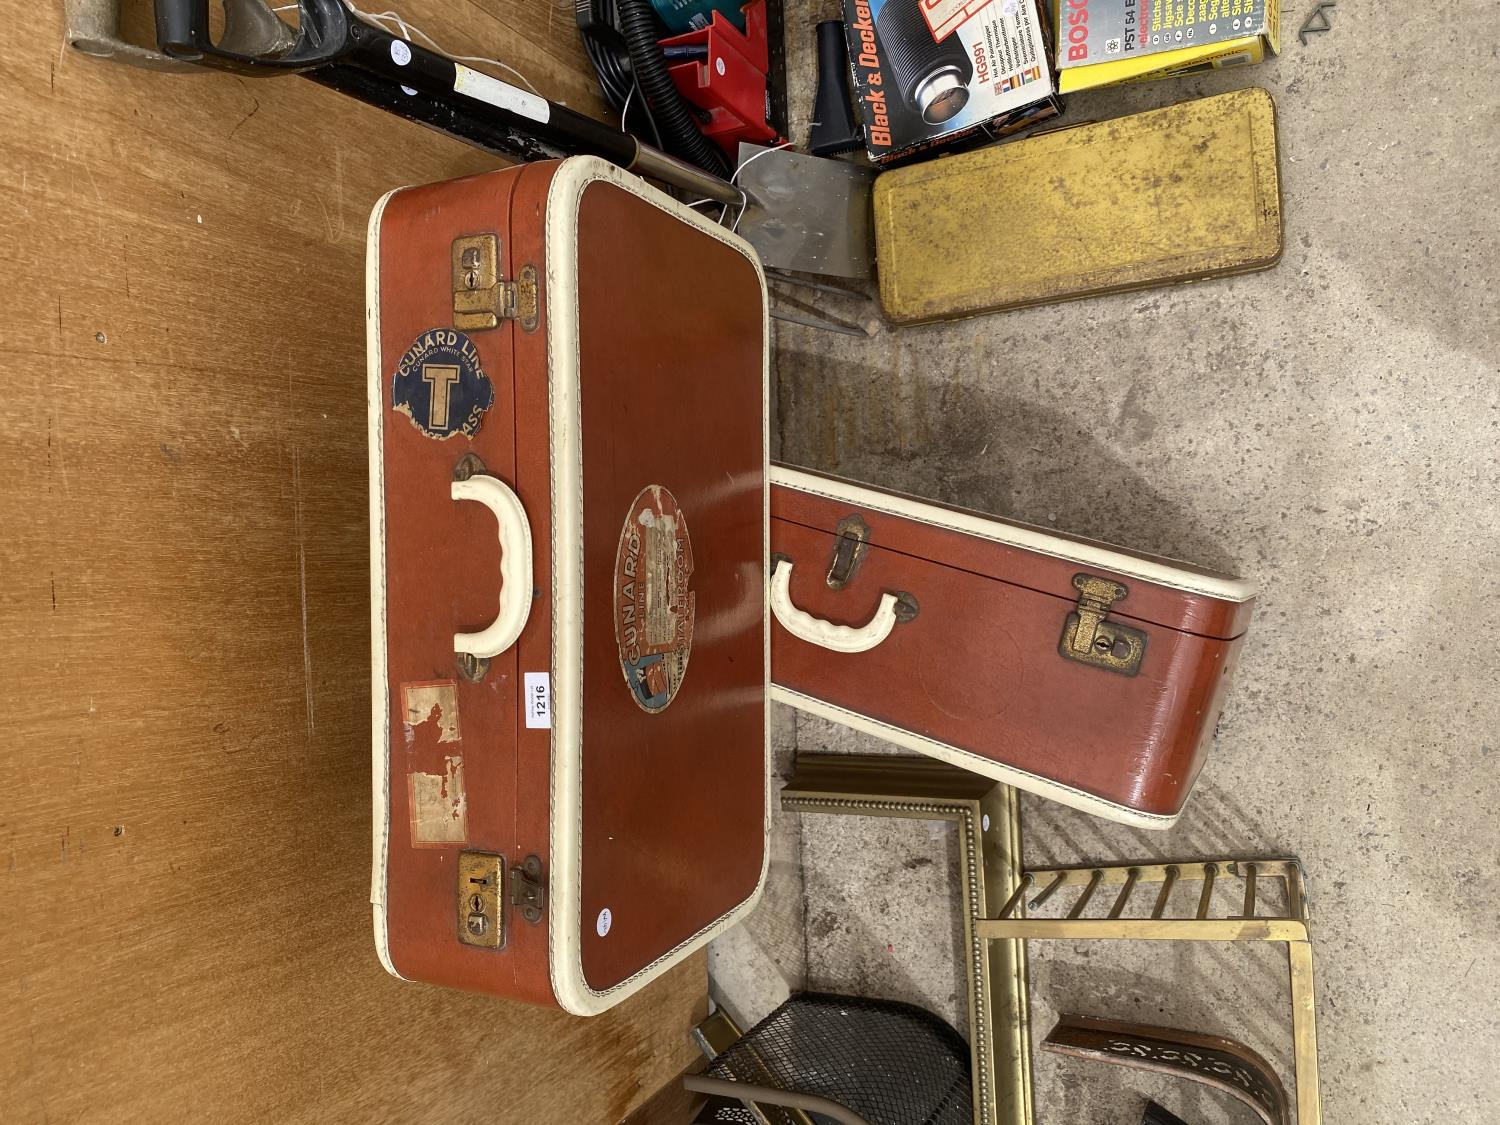 A PAIR OF VINTAGE LEATHER TRAVEL CASES - Image 4 of 4